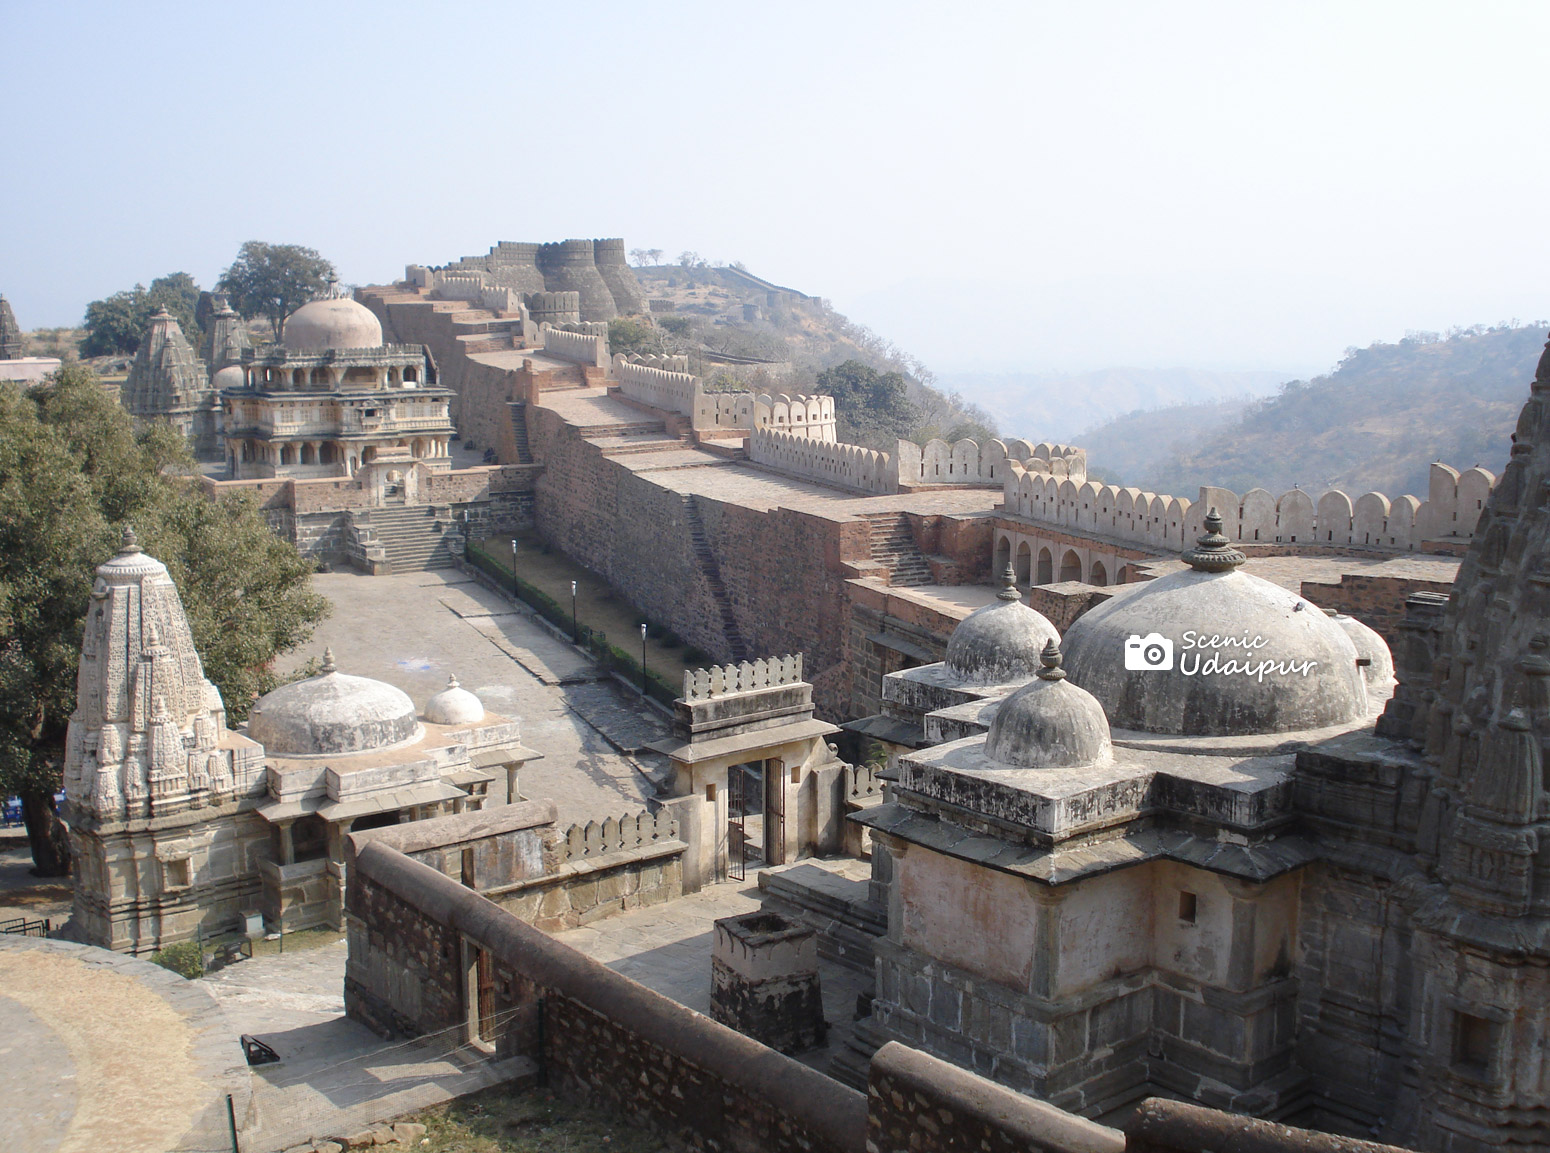 Gallery images and information: Kumbhalgarh FortUncle Rico Kyle Orton